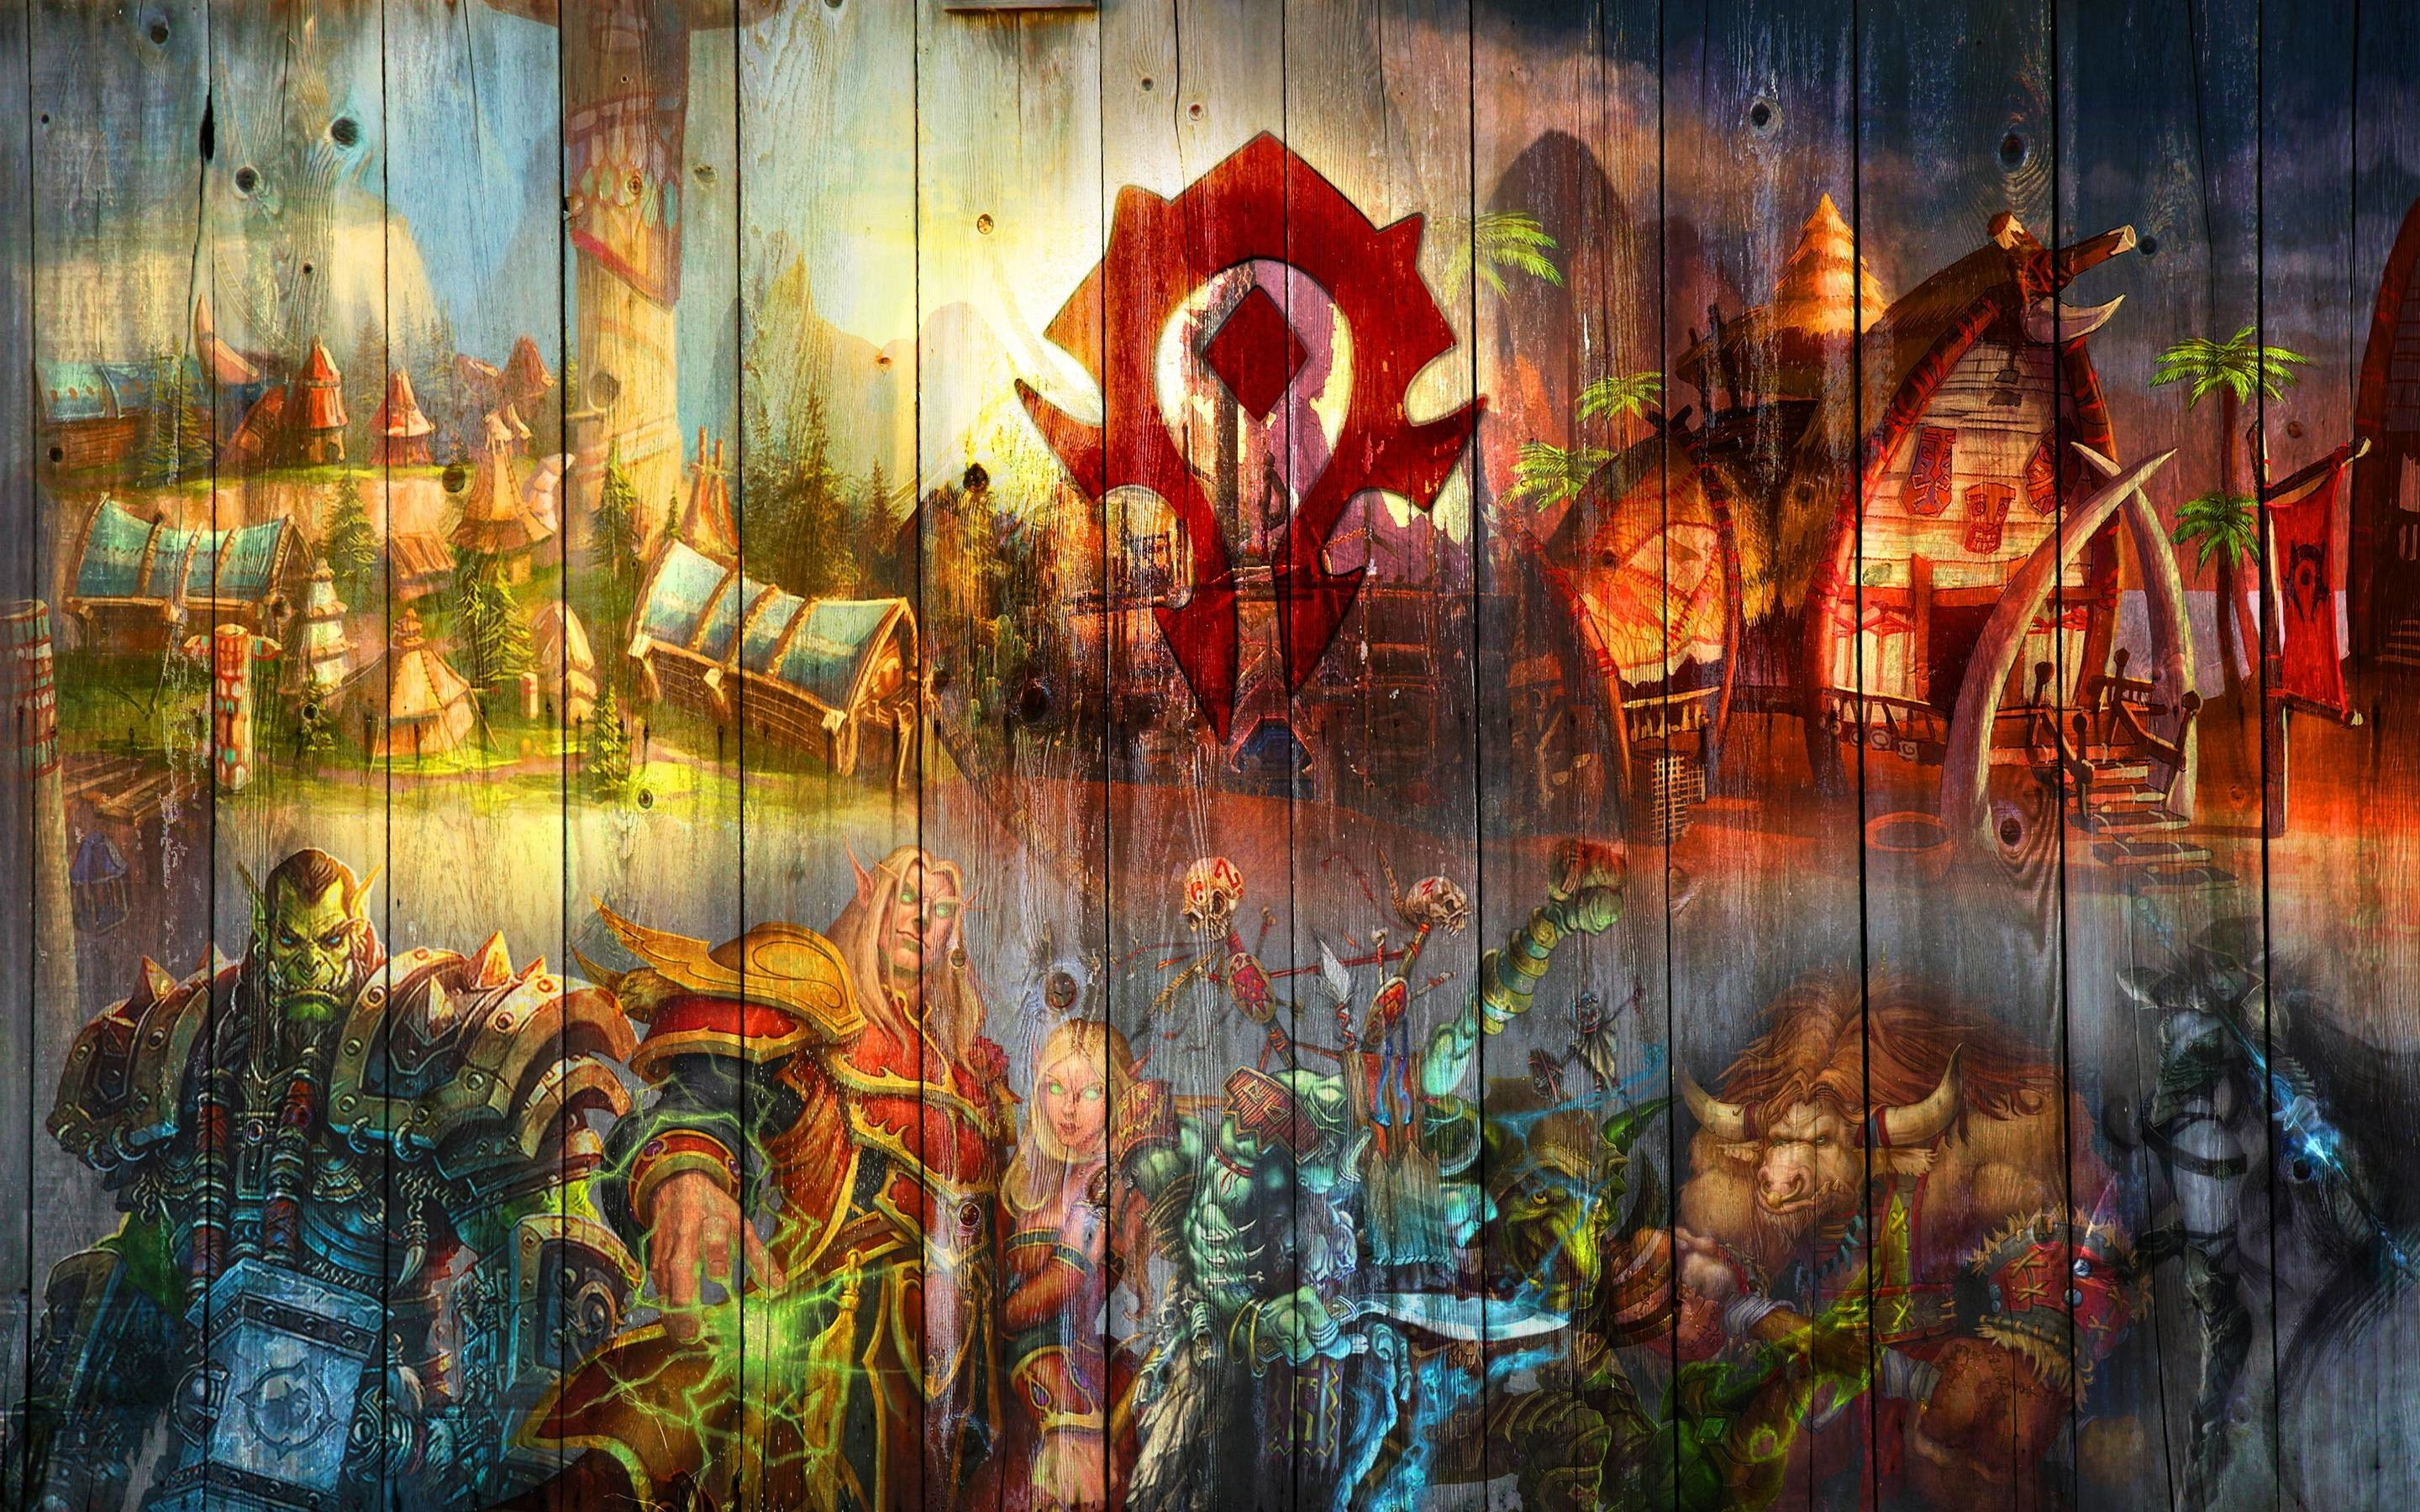 World of Warcraft Wallpapers Best Wallpapers | HD Wallpapers | Pinterest |  Hd wallpaper and Wallpaper